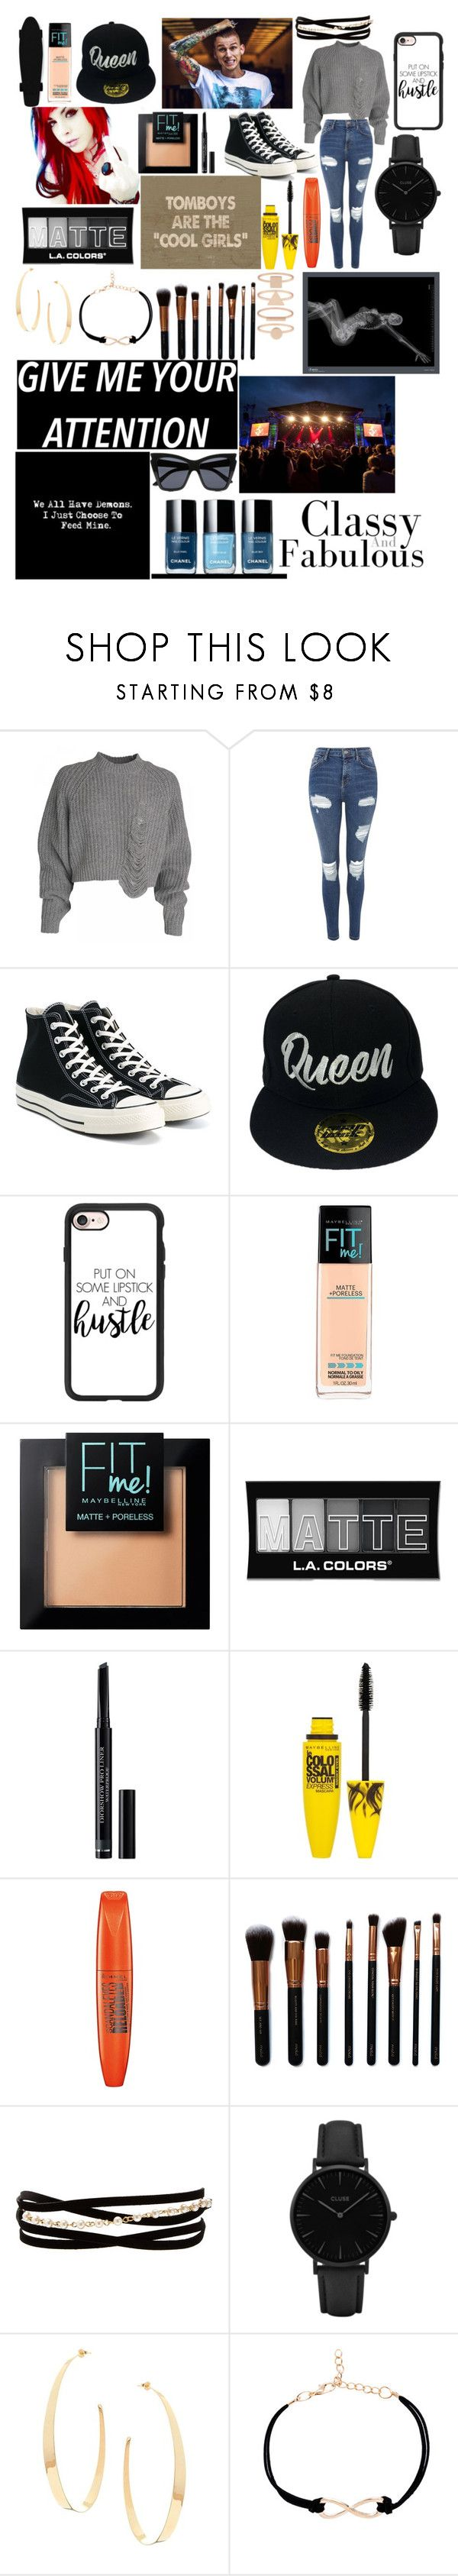 """""""His Girl"""" by snow-queen13 ❤ liked on Polyvore featuring WWE, Topshop, Converse, Lovers + Friends, Casetify, Maybelline, L.A. Colors, Christian Dior, Rimmel and M.O.T.D Cosmetics"""